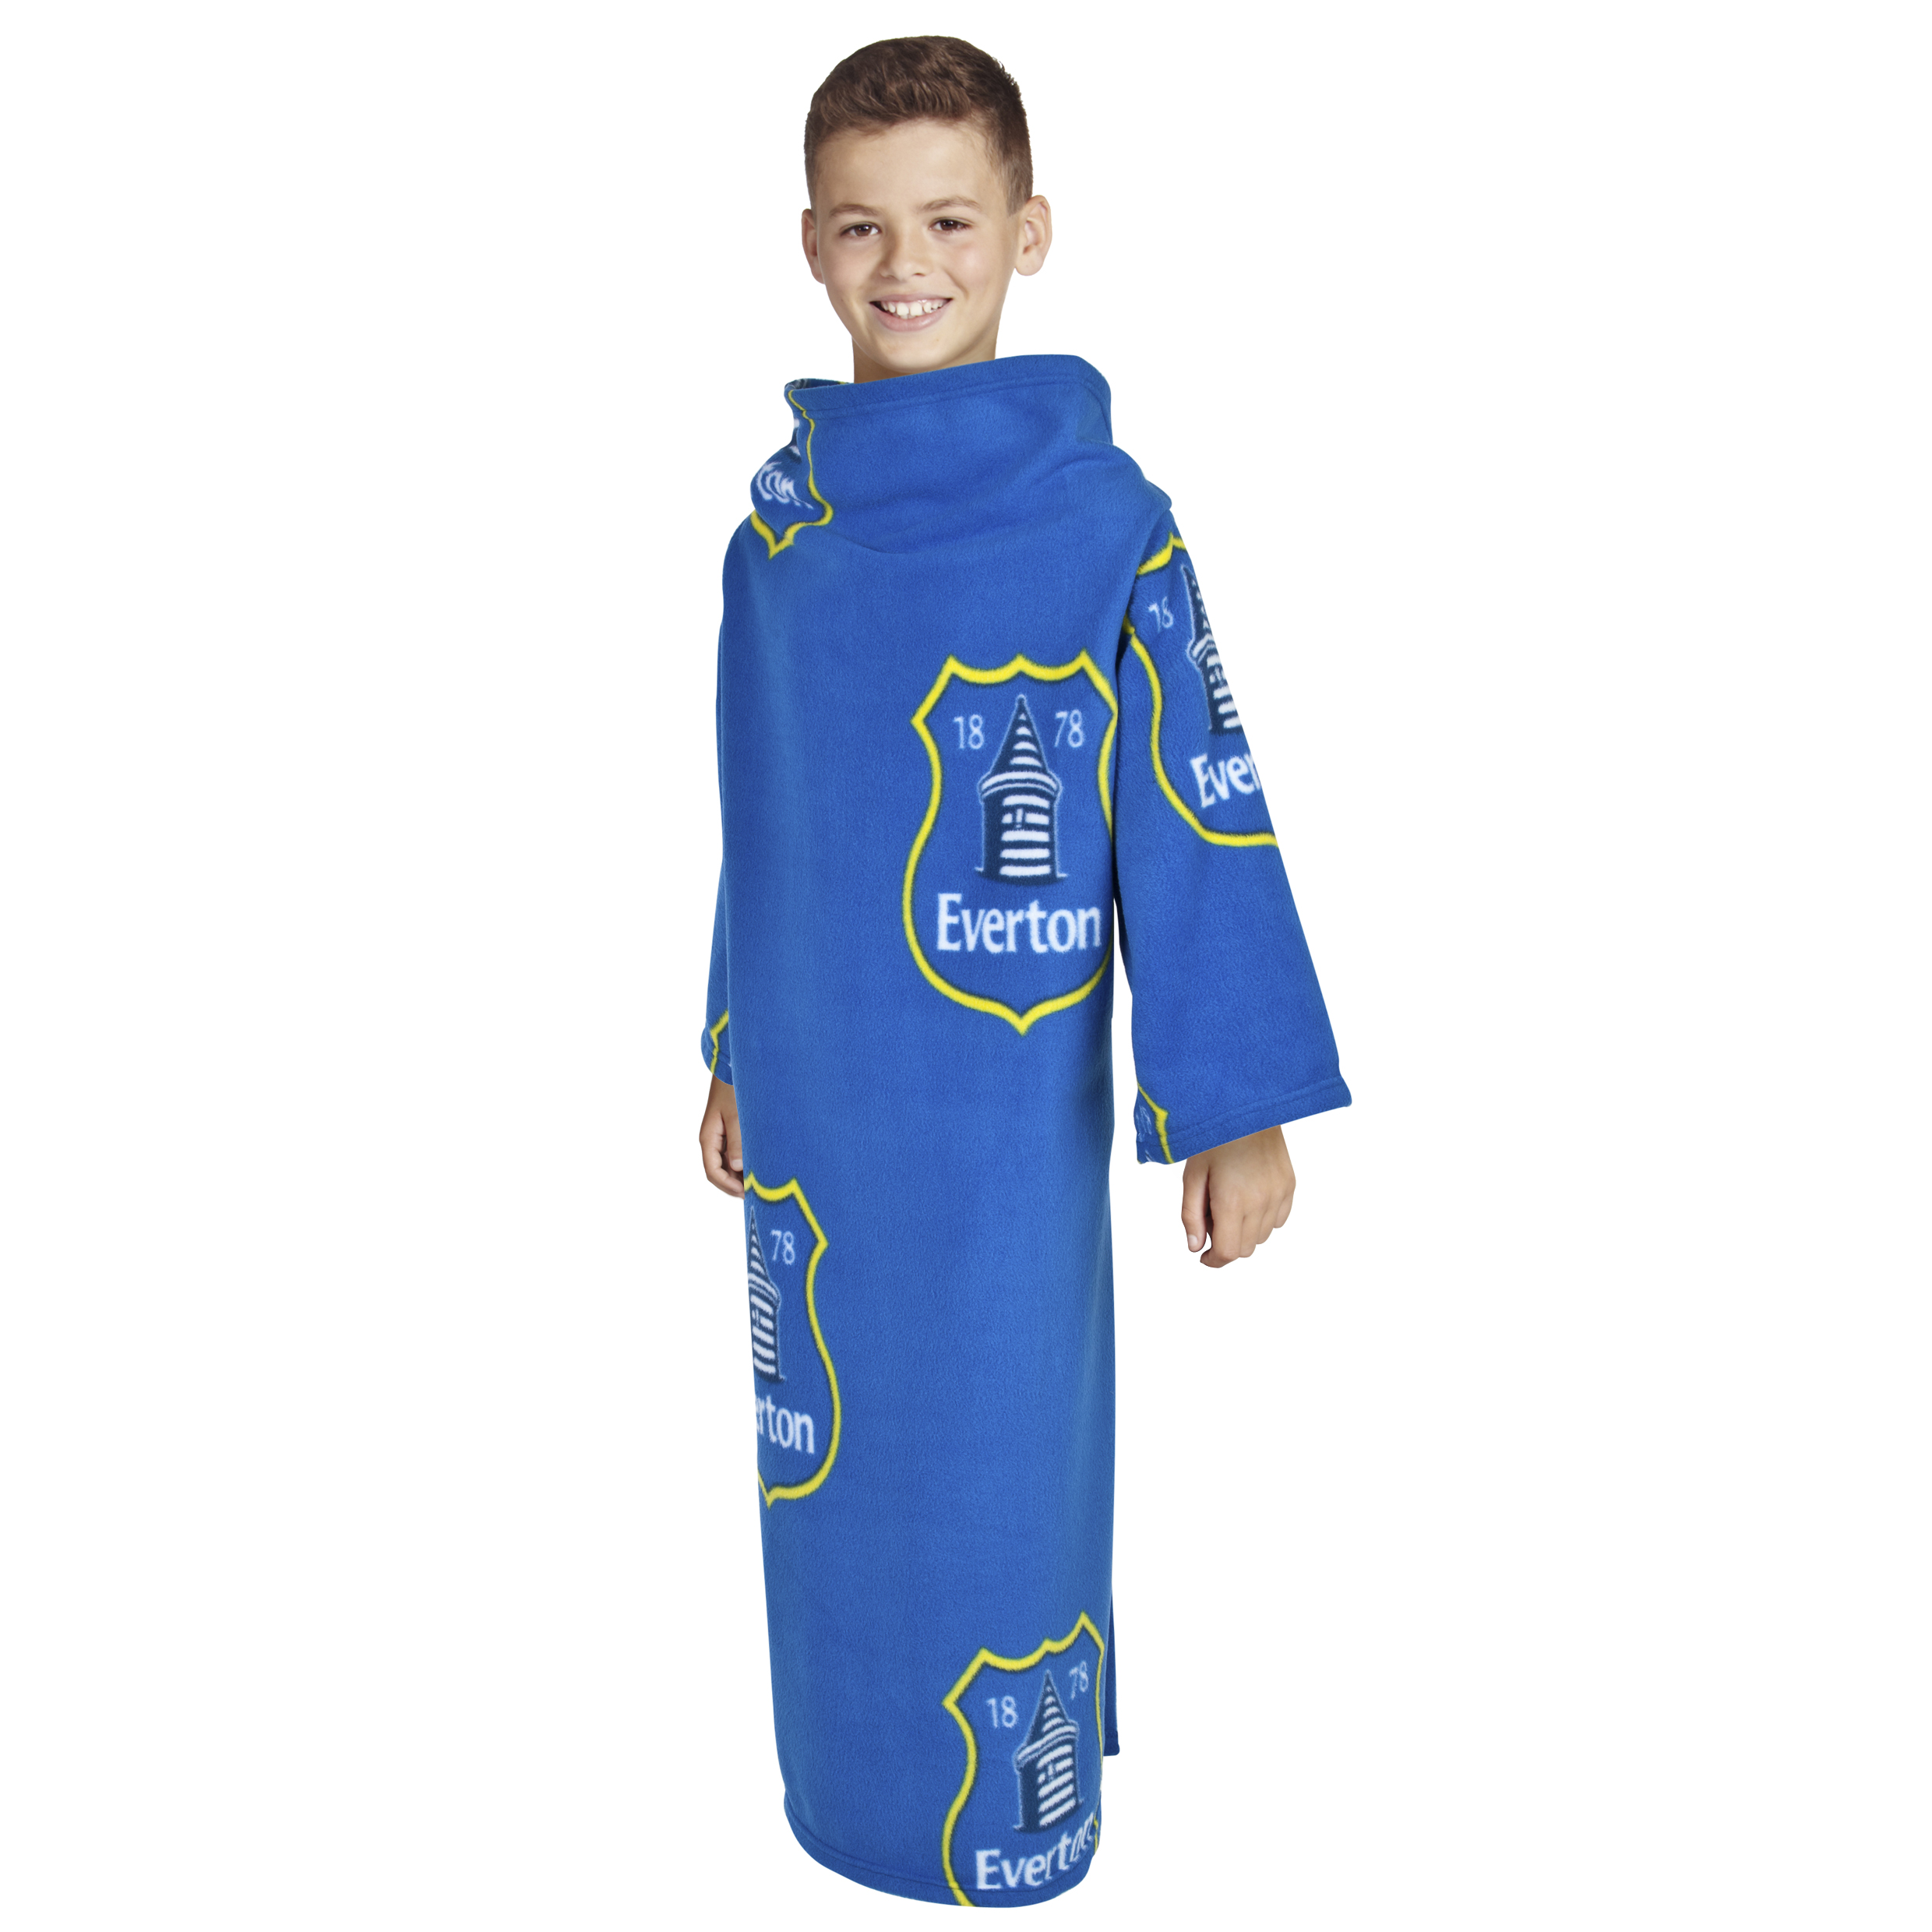 Everton Snuggle Fleece